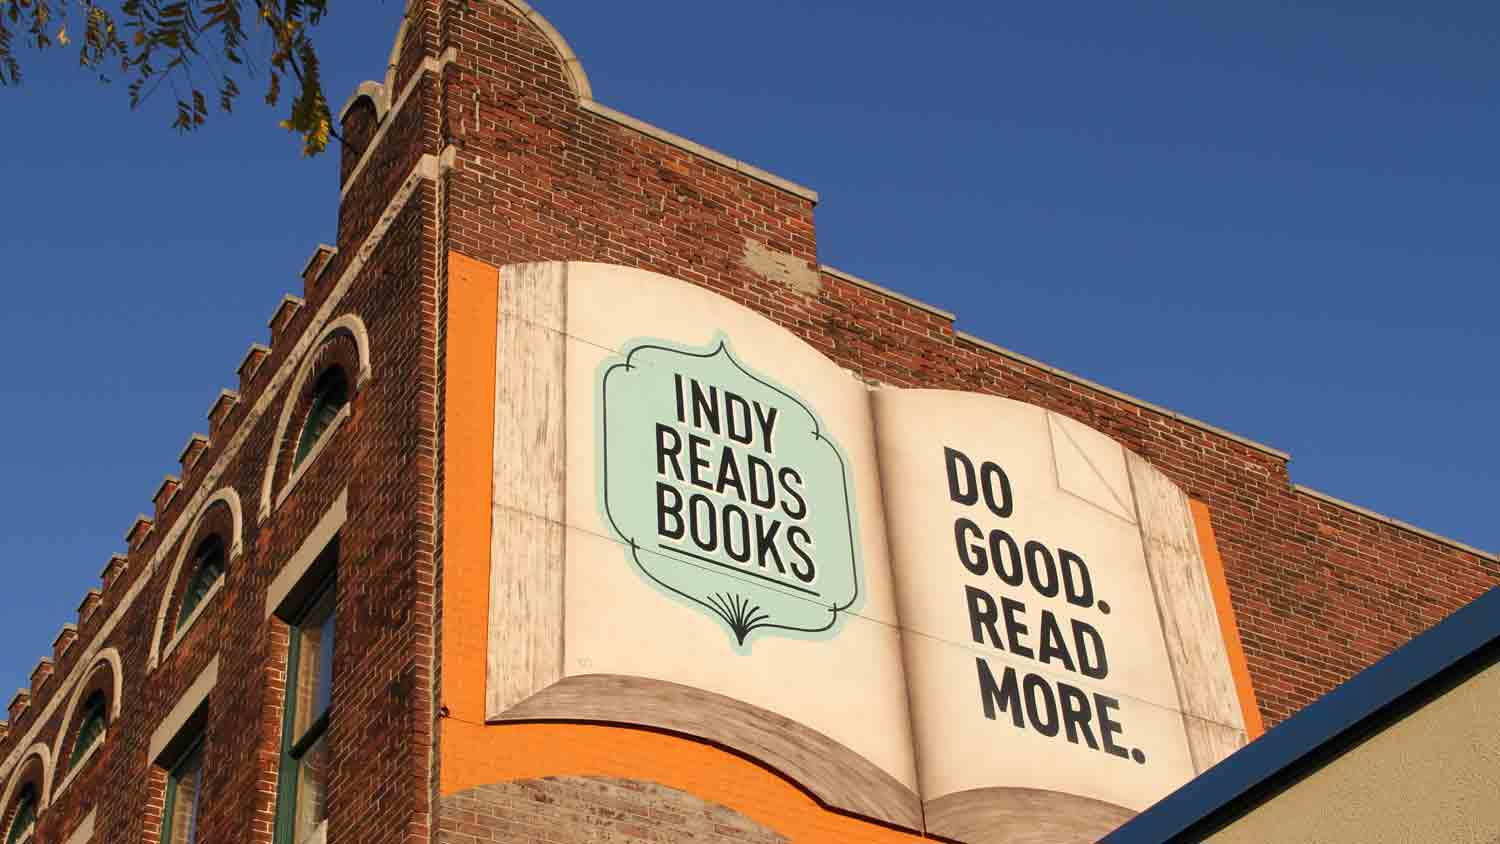 Indy Reads Books 2